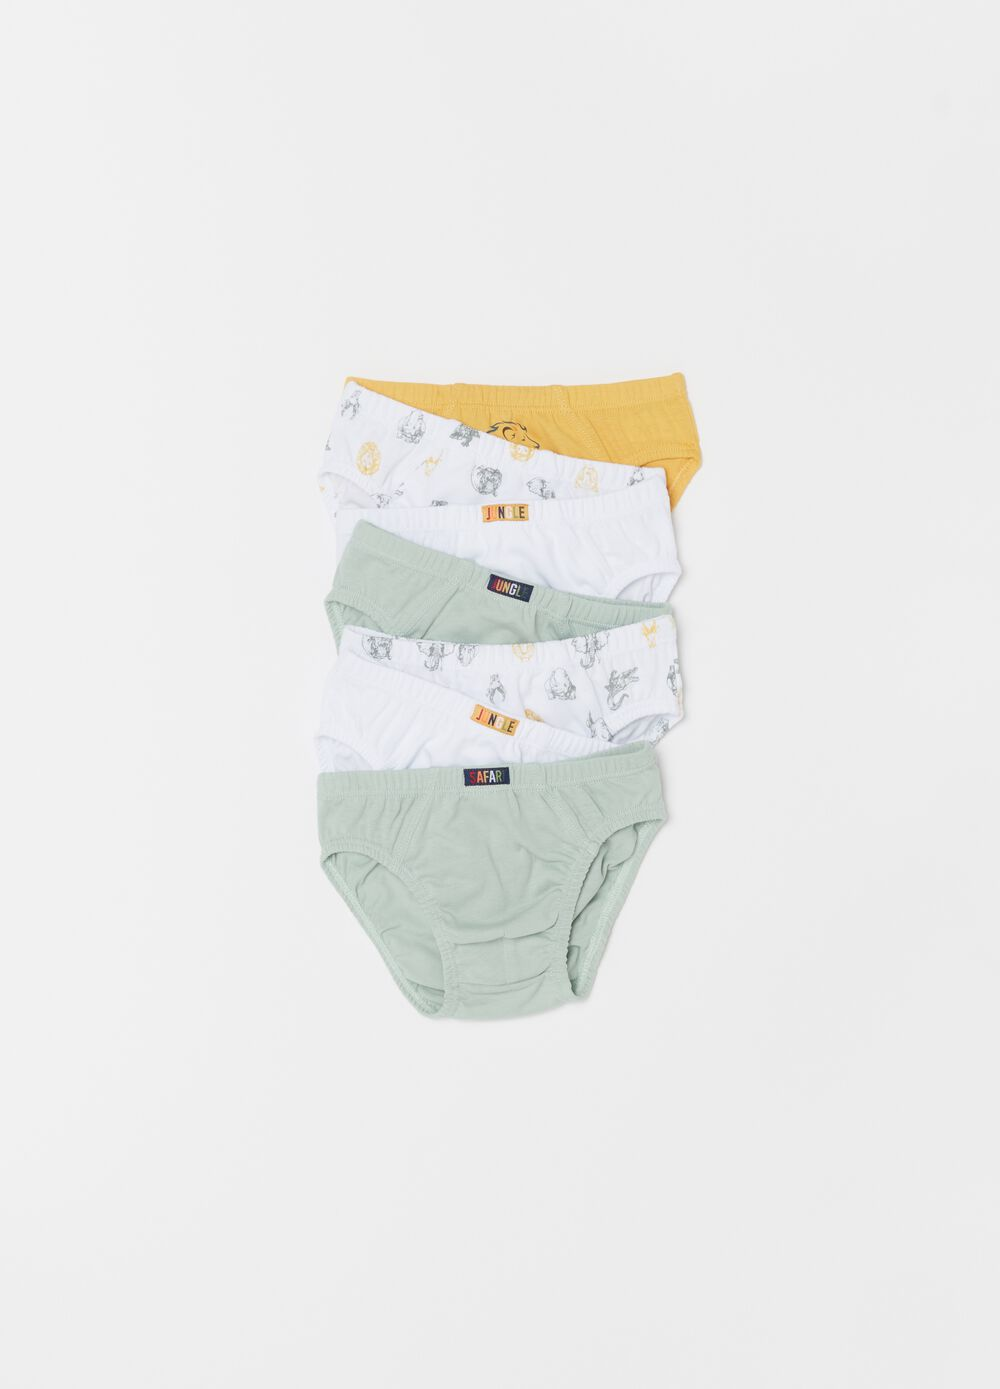 Seven-pack 100% organic cotton briefs with pattern